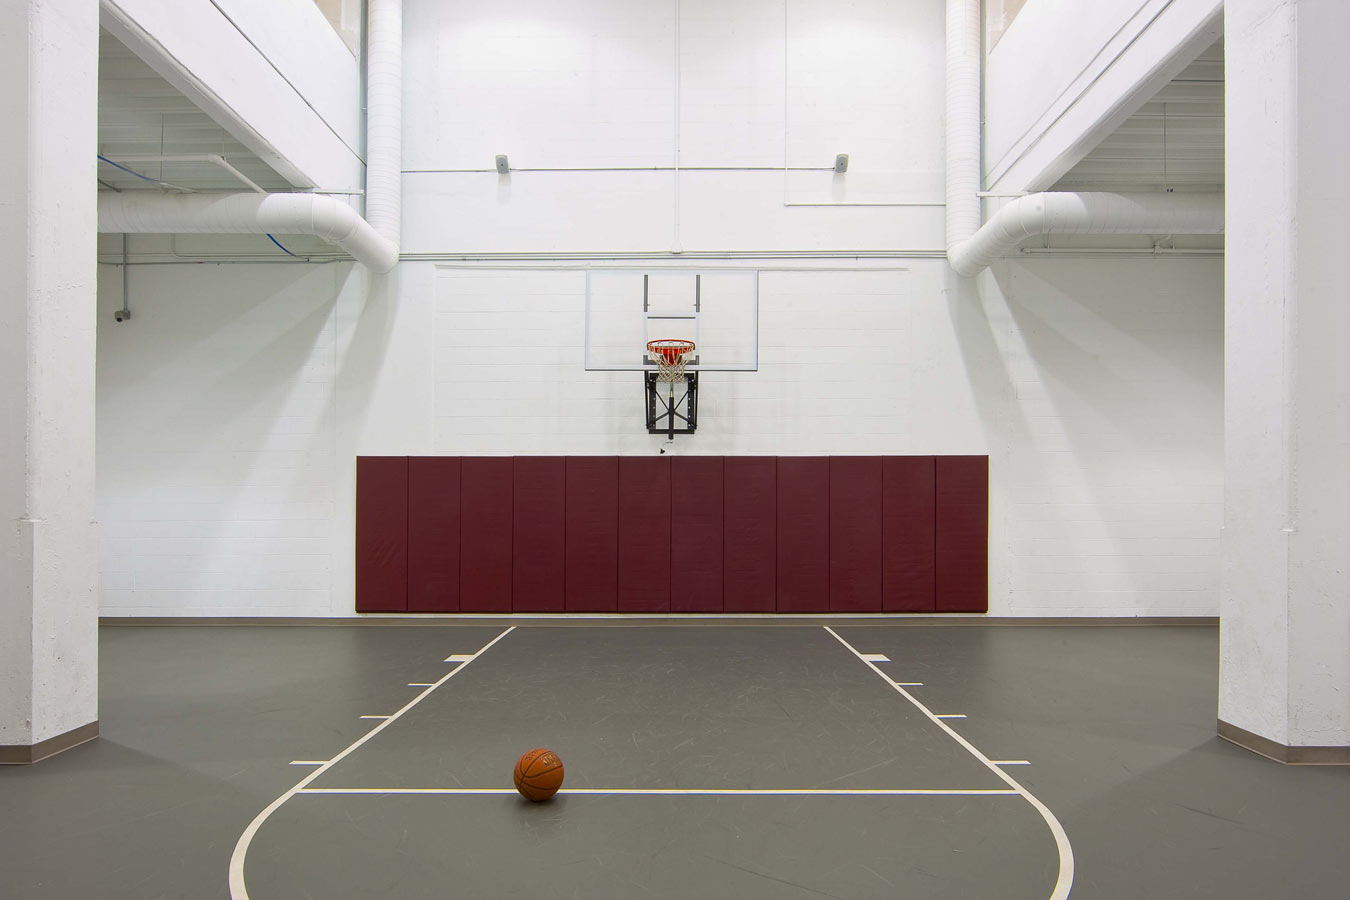 8---CANCOlofts---BALL-COURT.jpg